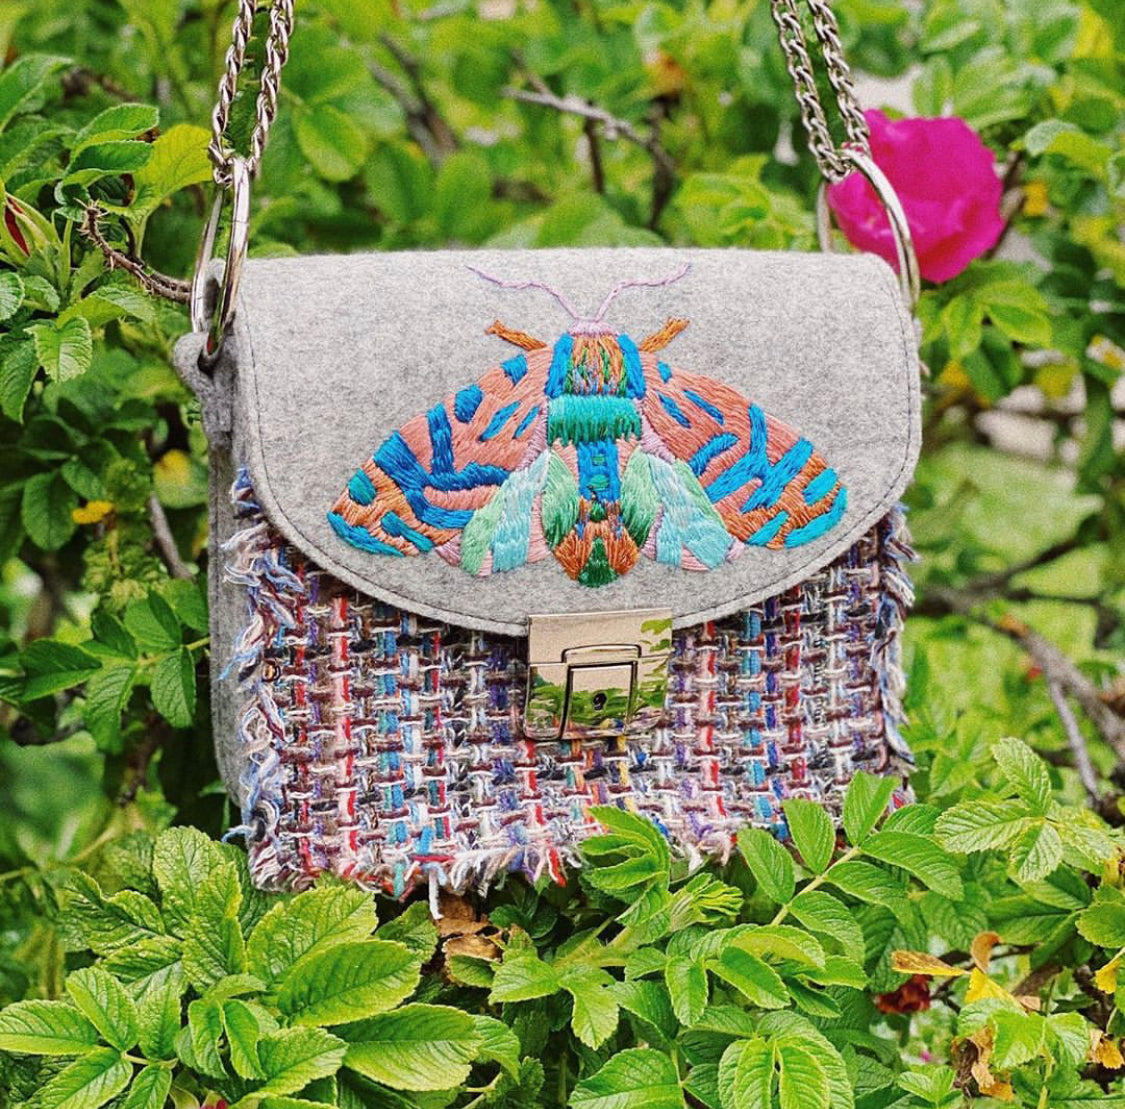 MOTH tweed bag with handmade embroidery